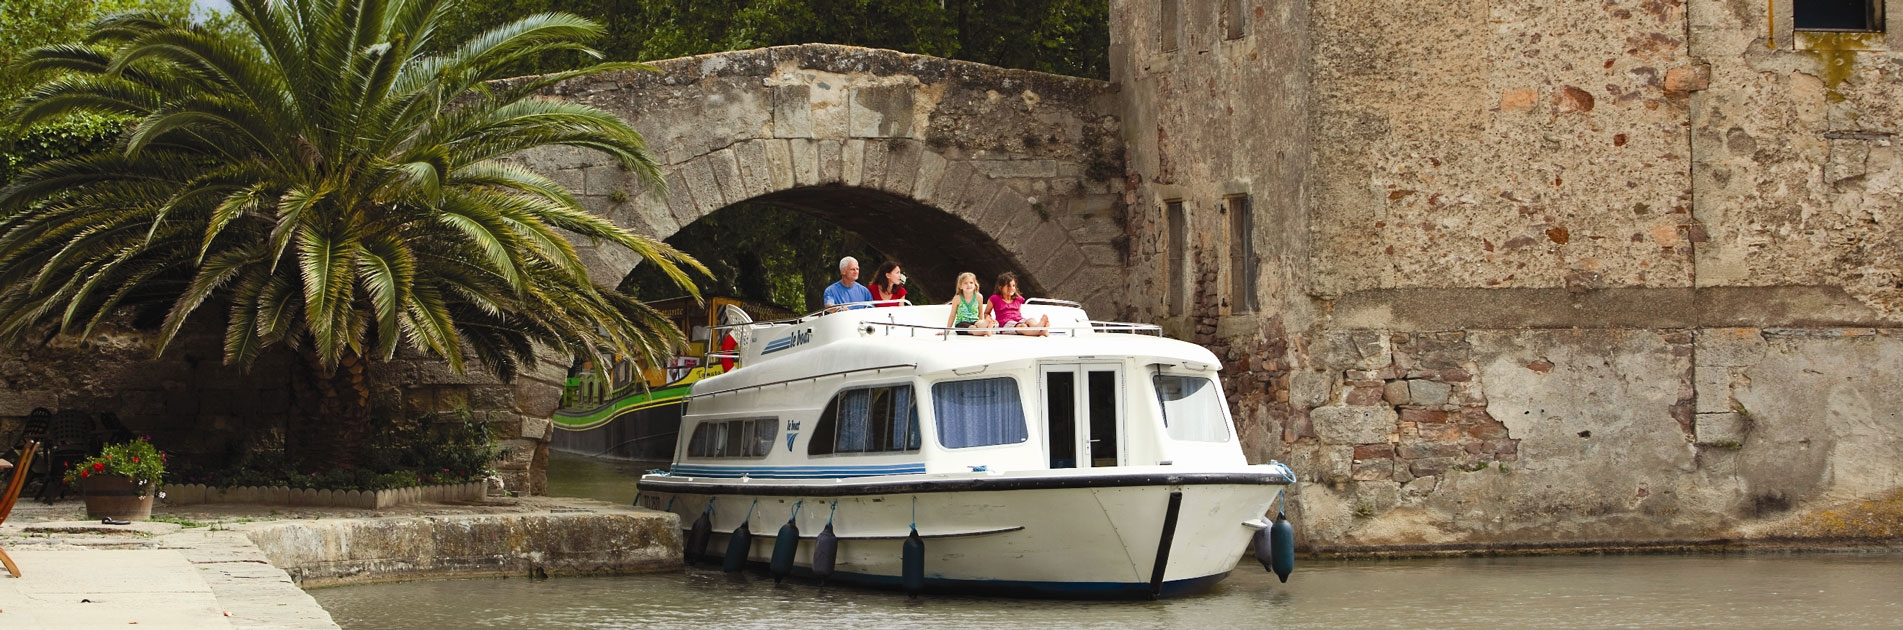 Riverboat on the Canal du Midi